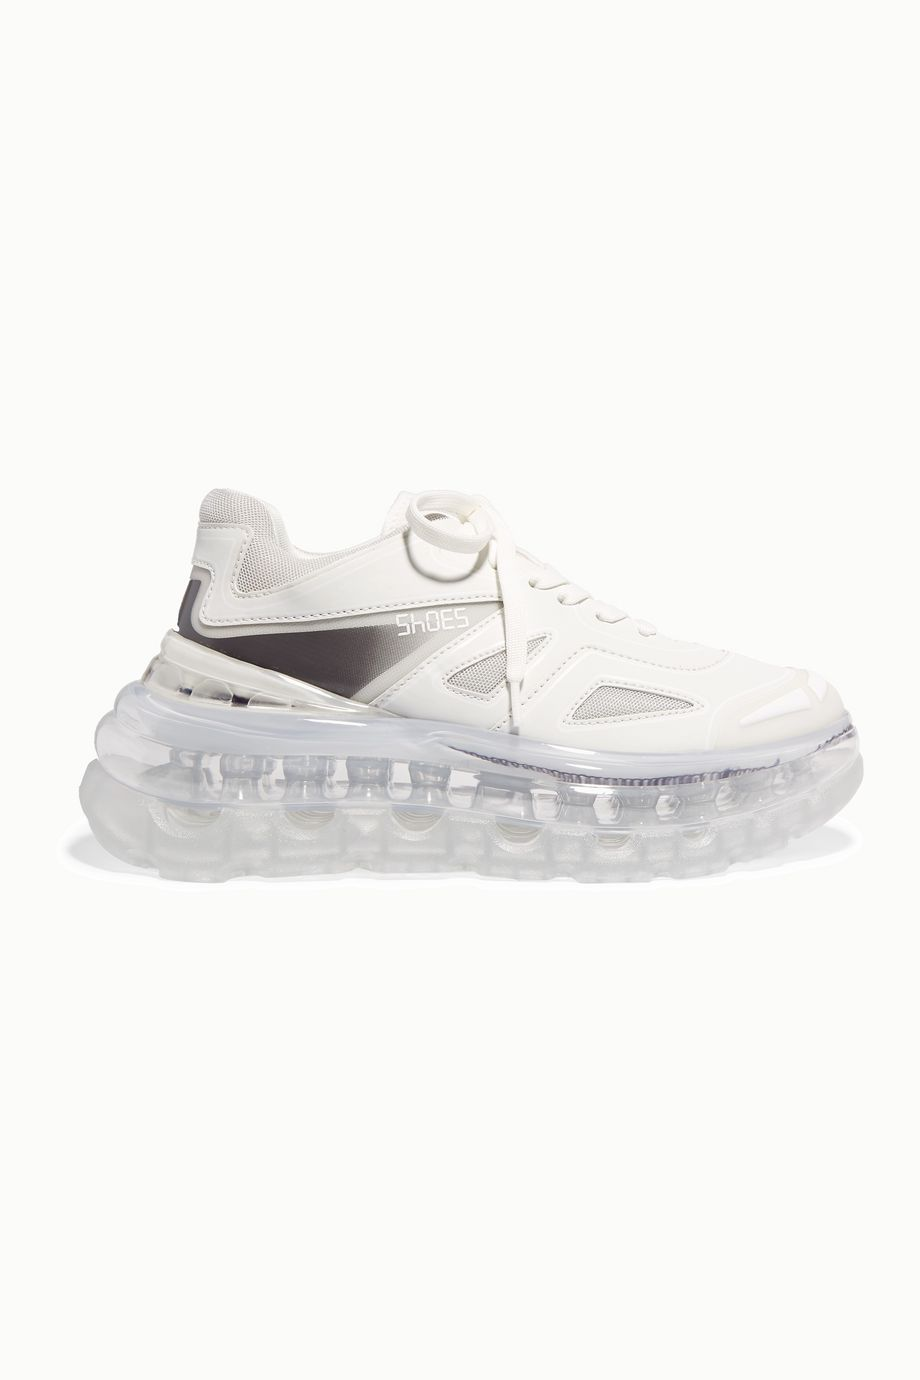 Shoes 53045 Bump Air faux leather, mesh and neoprene sneakers